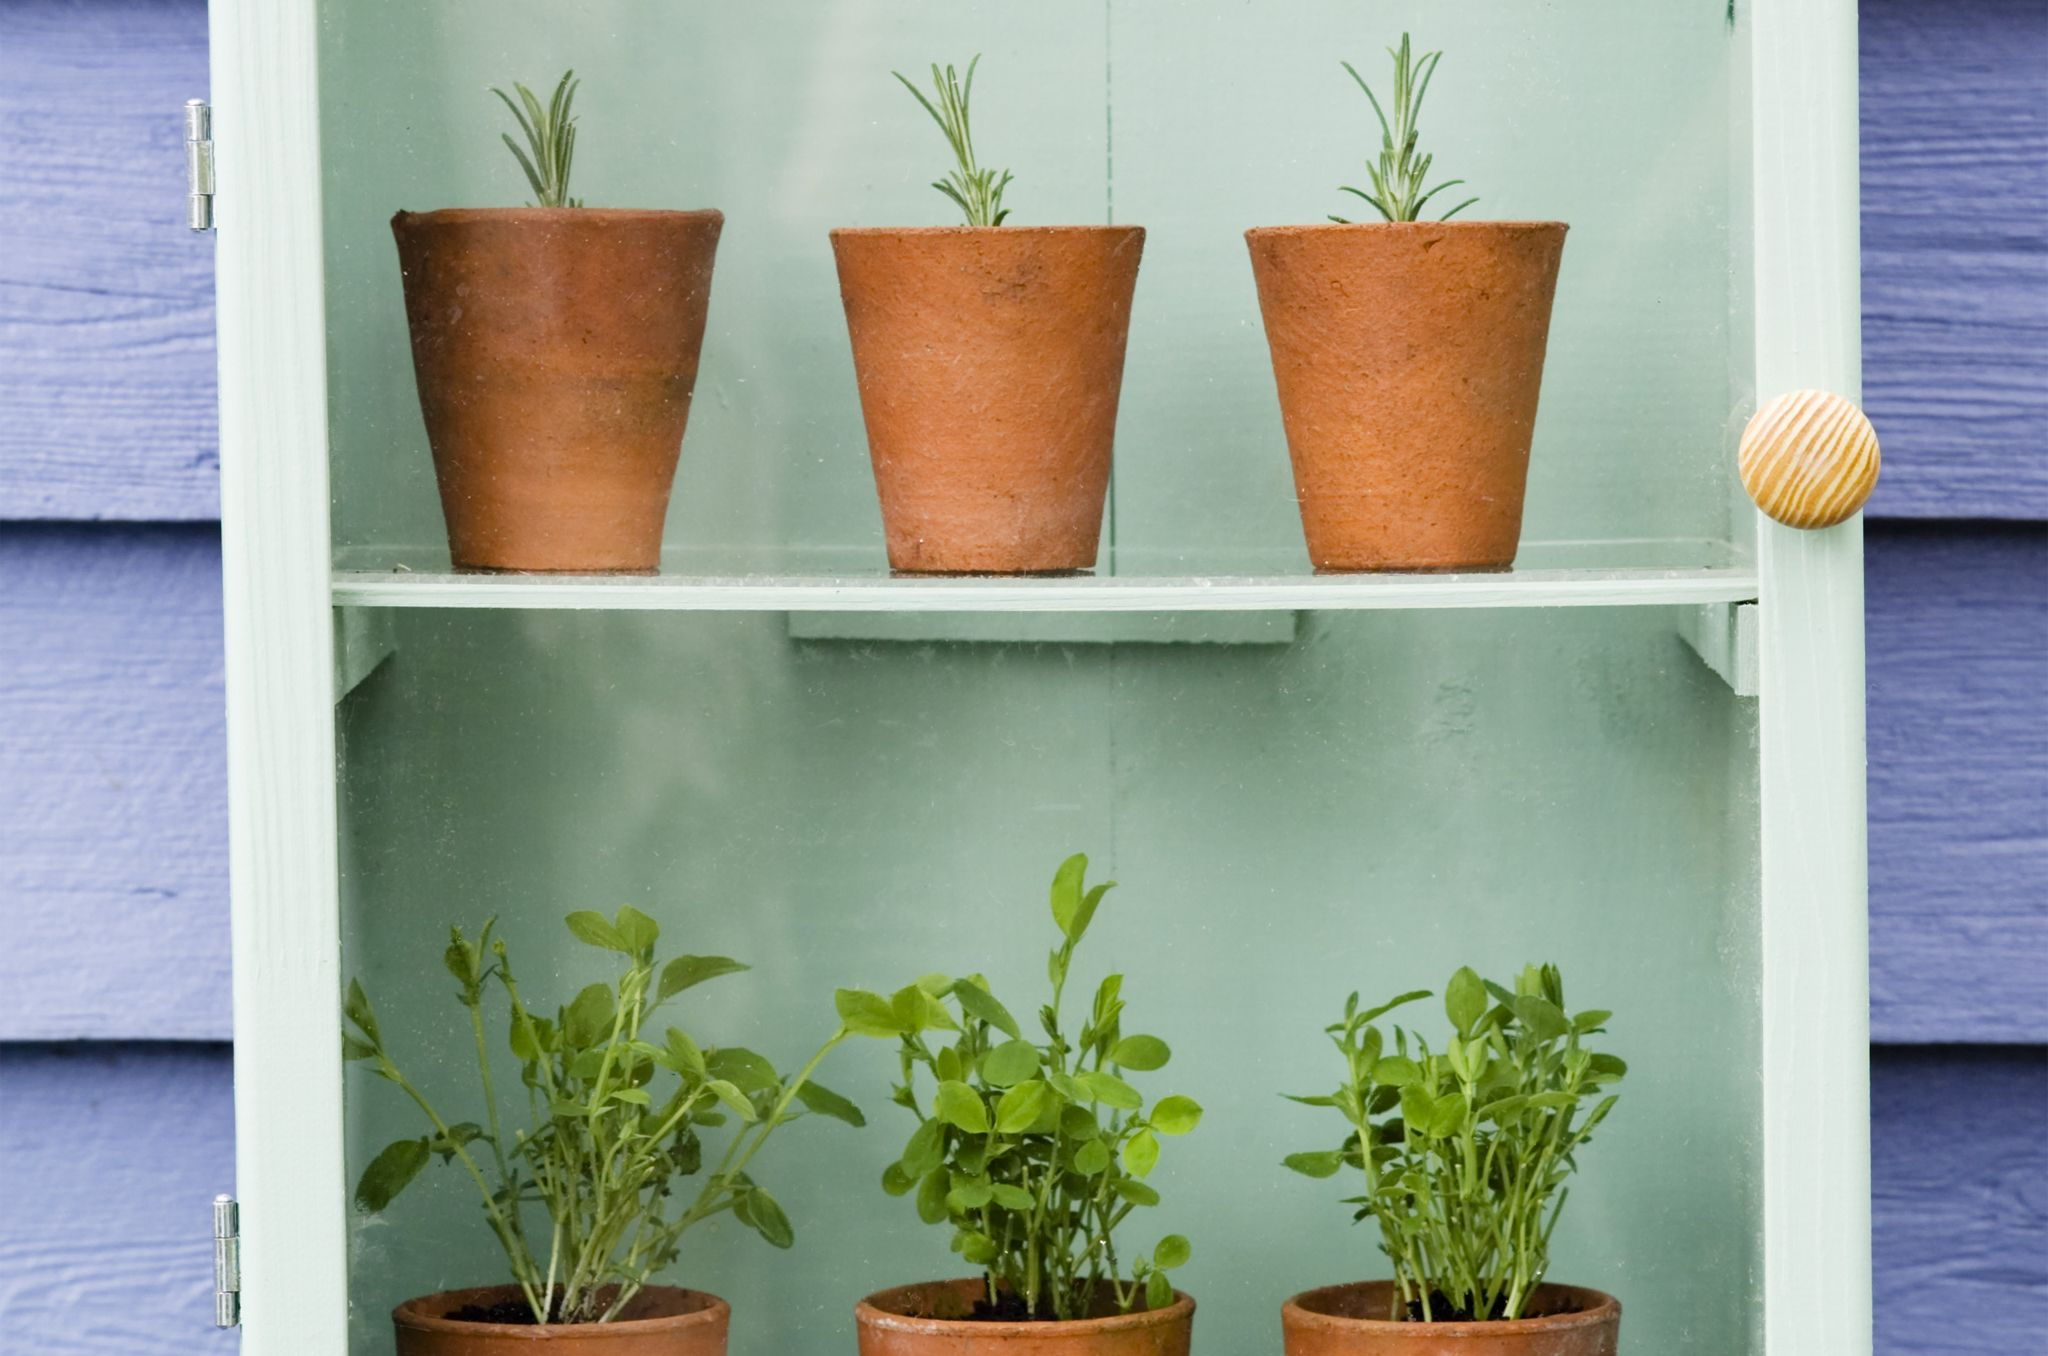 Discover how to create a mini-greenhouse to protect cuttings and seedlings, with the help of our easy practical guide, from BBC Gardeners' World Magazine.